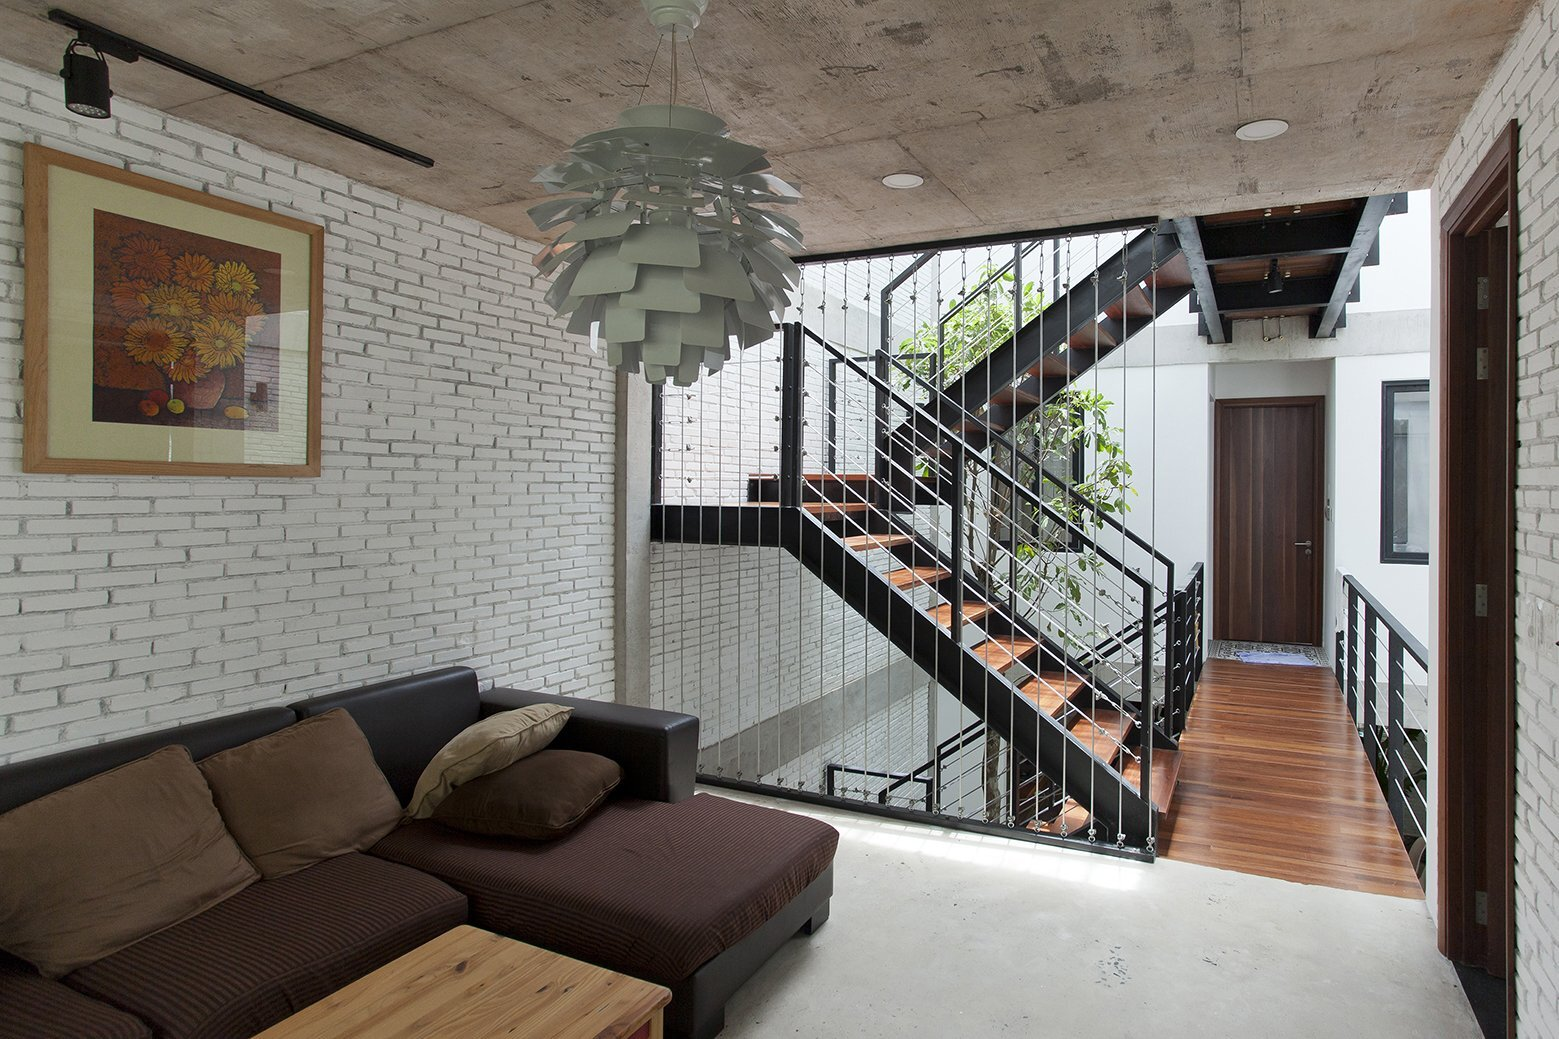 An Inward-Looking Family House in Vietnam